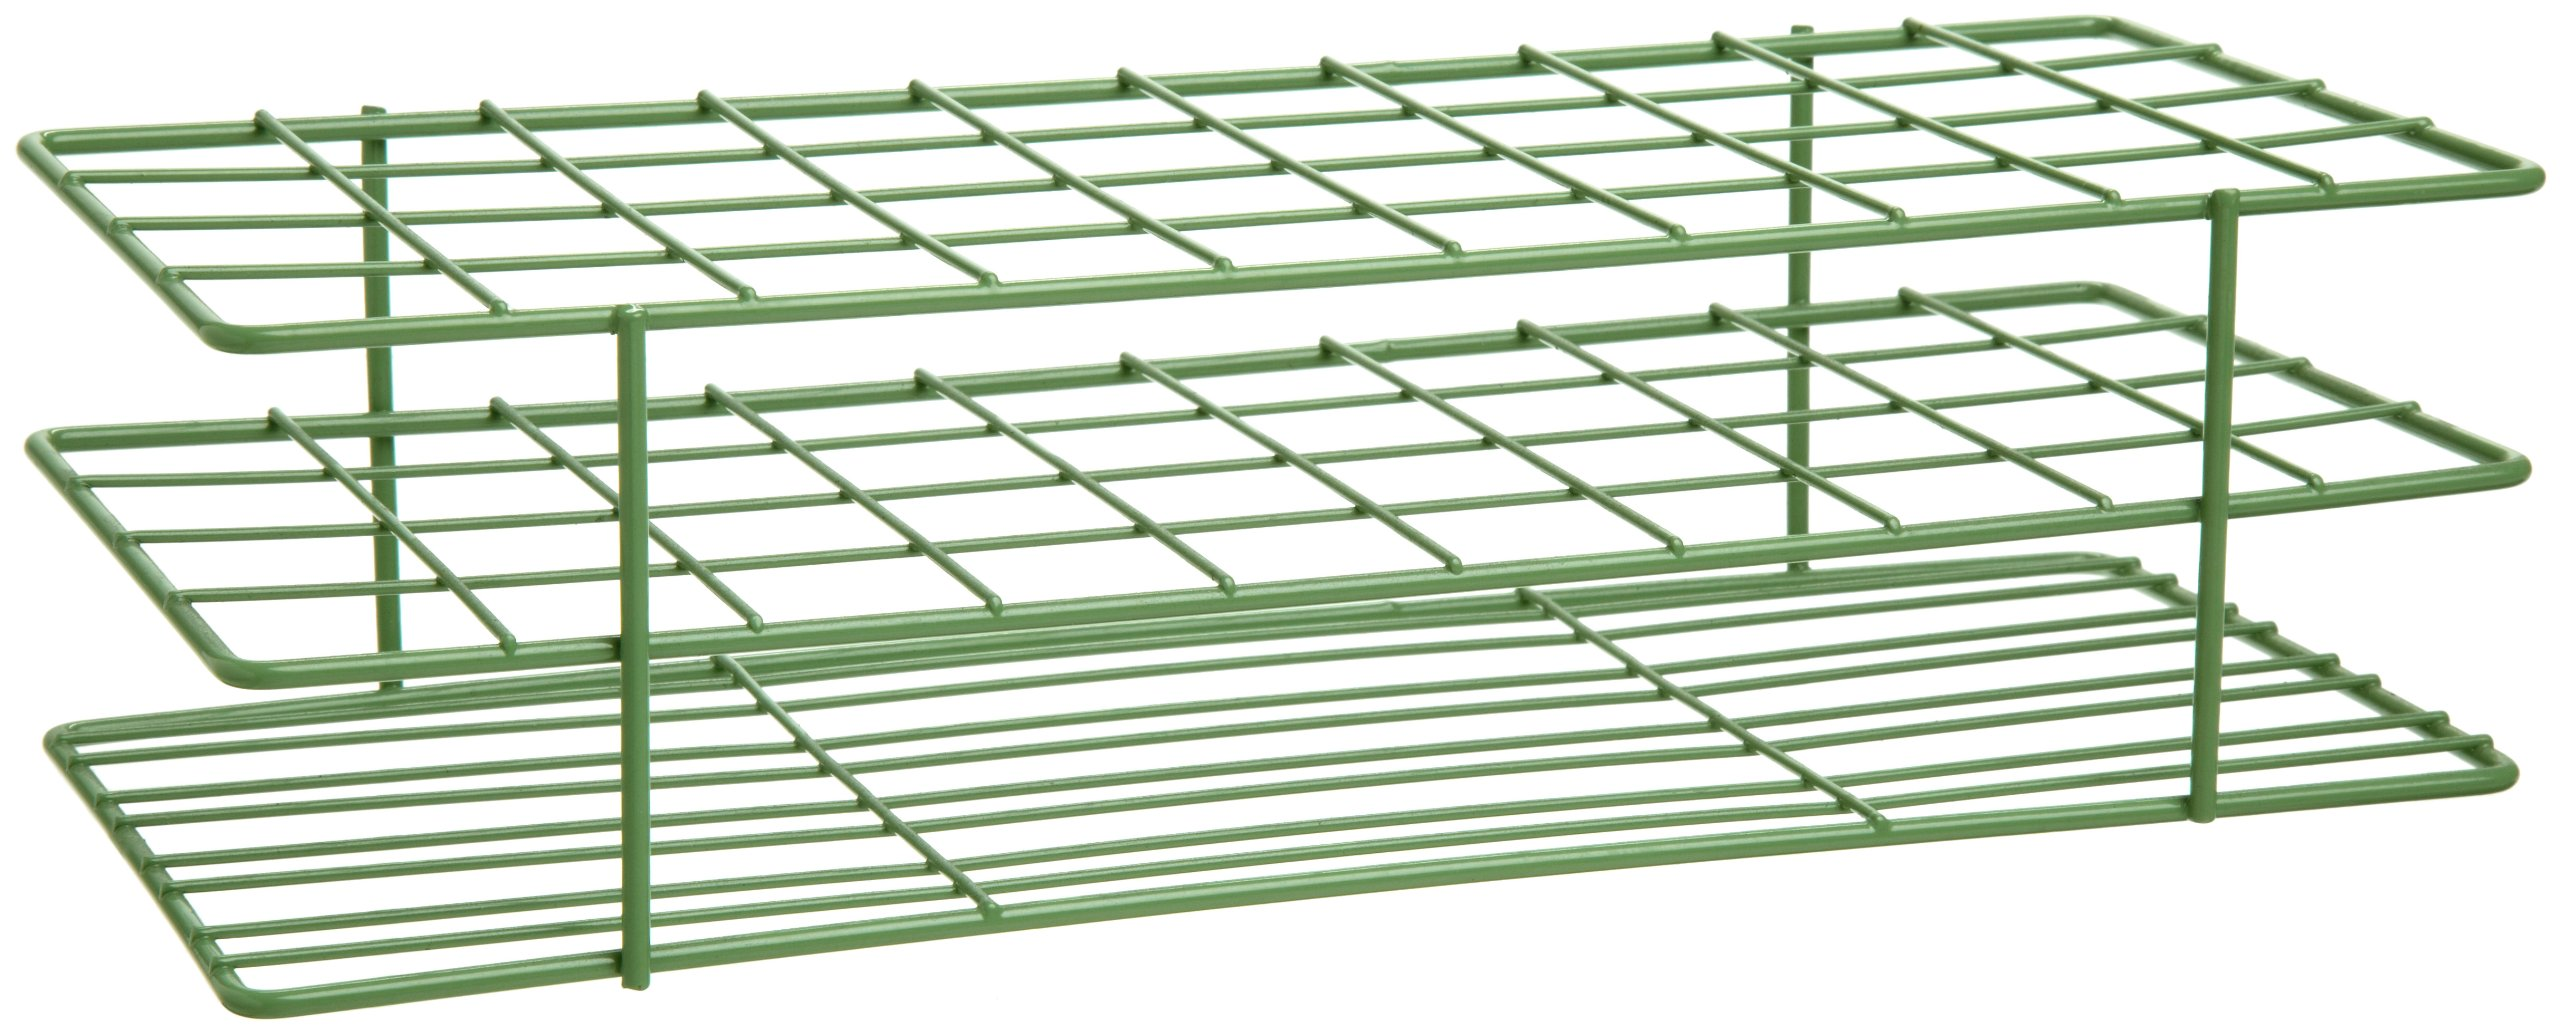 Bel-Art F18772-0000 Poxygrid Test Tube Rack; 20-25mm, 40 Places, 11⁹/₁₆ x 5¹/₁₆ x 3¹/₄ in., Green